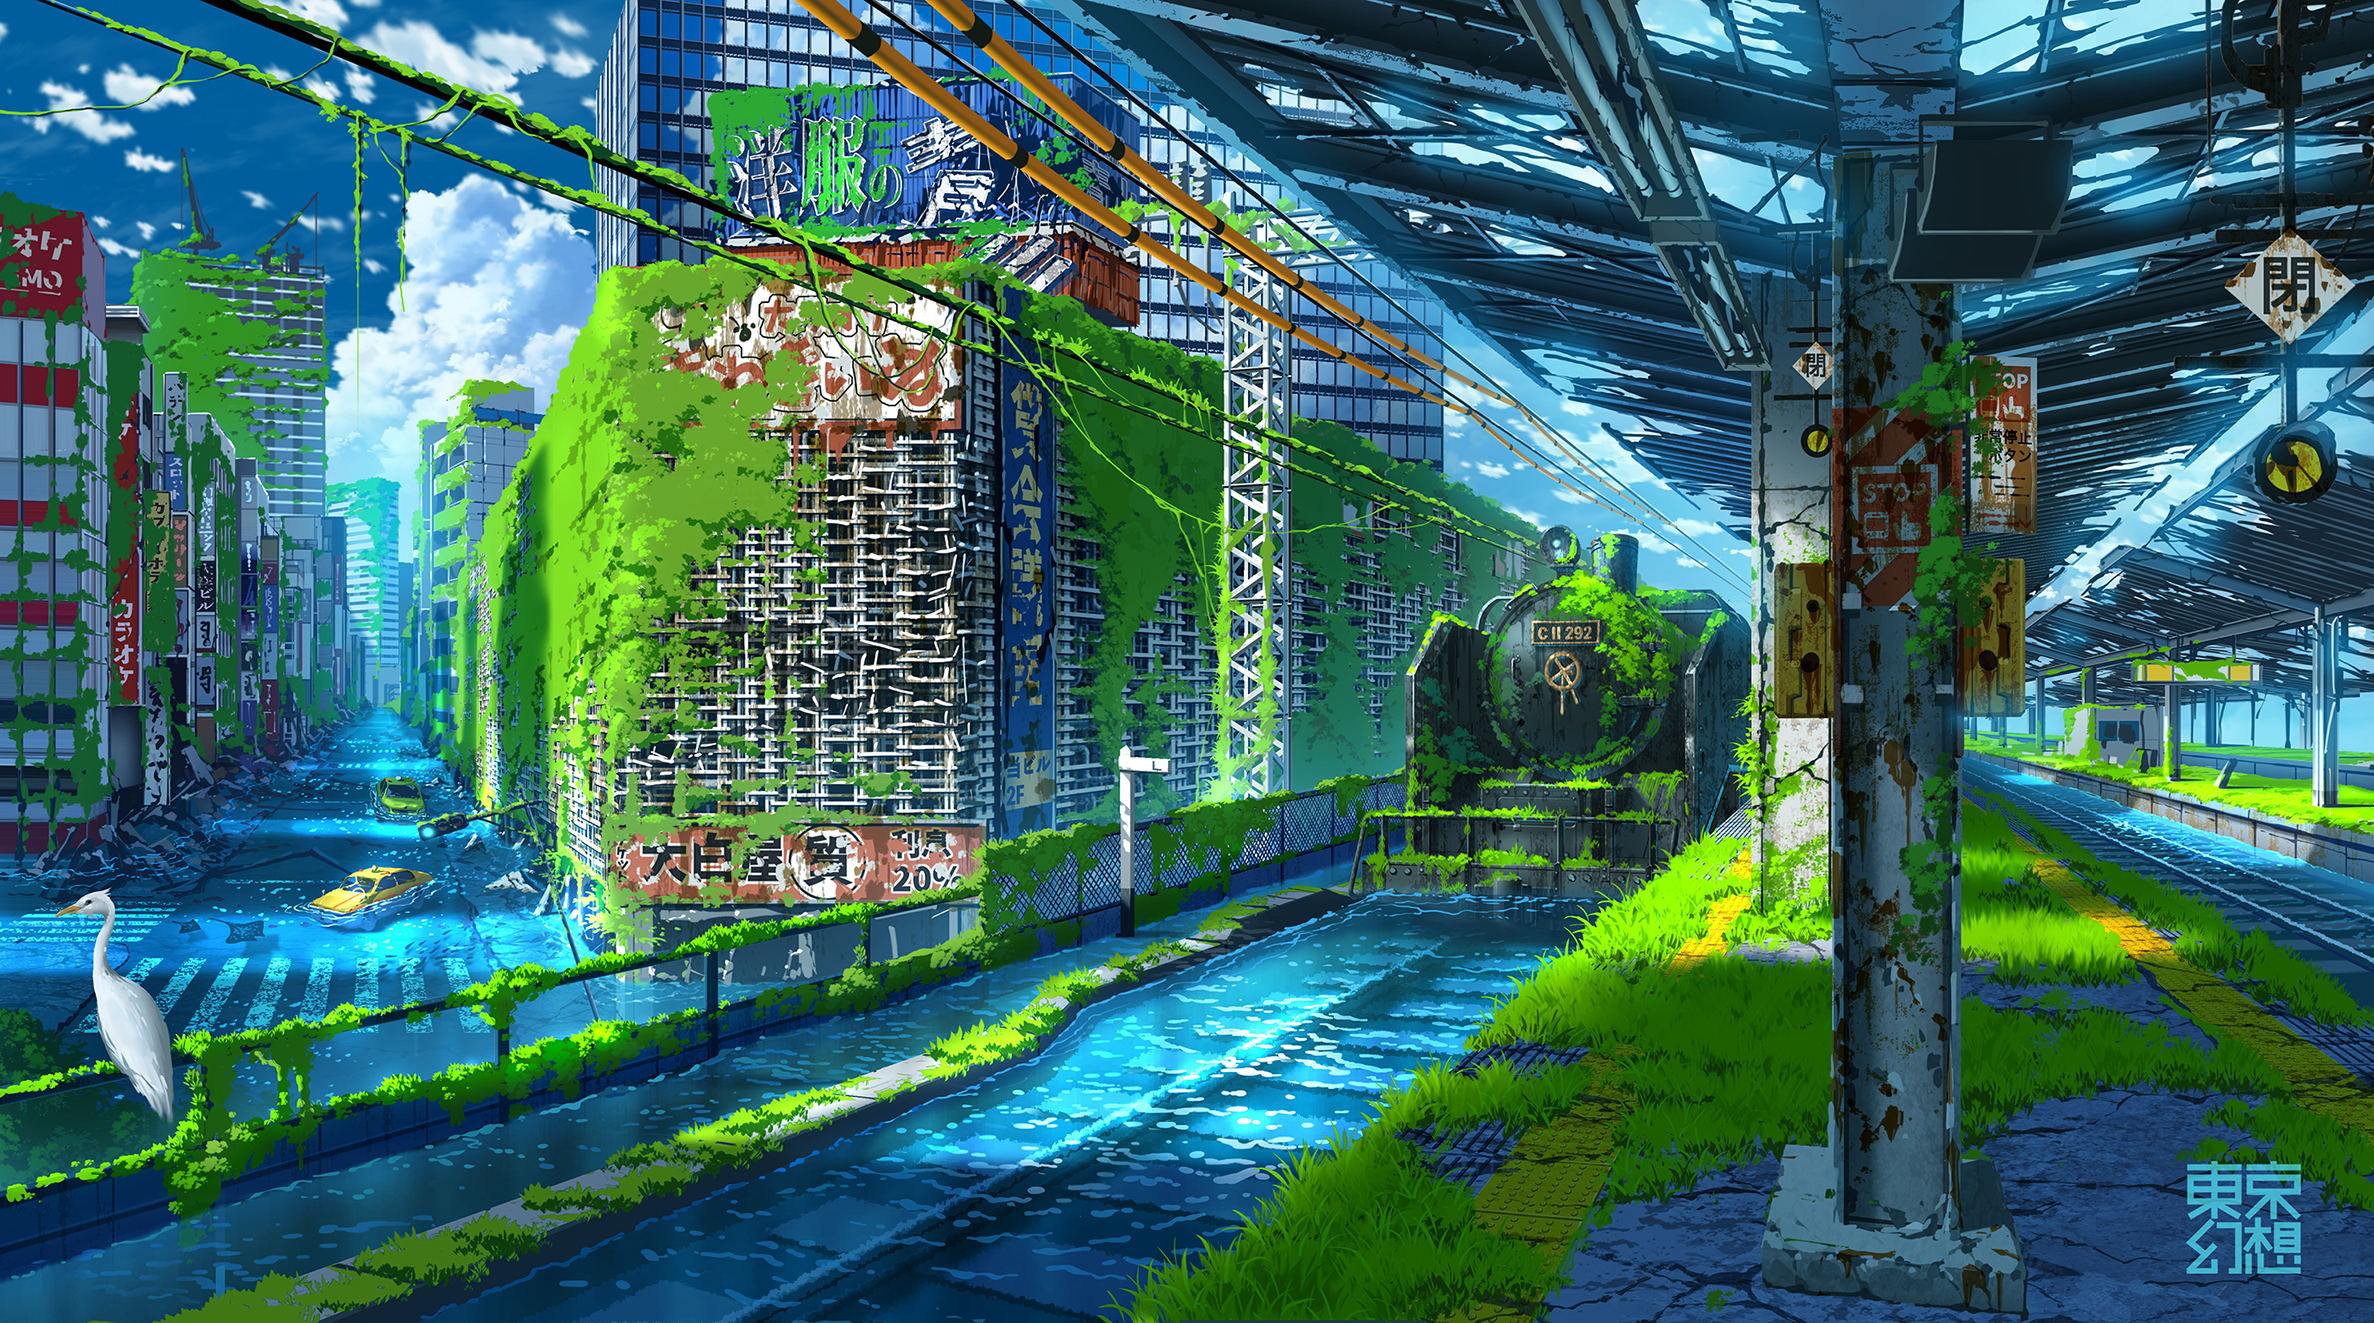 Anime 2374x1323 anime landscape apocalyptic ruins ruin water city cityscape clouds colorful architecture modern urban vehicle car transport train train station railway nature grass digital digital art artwork drawing digital painting fantasy art anime sky sky